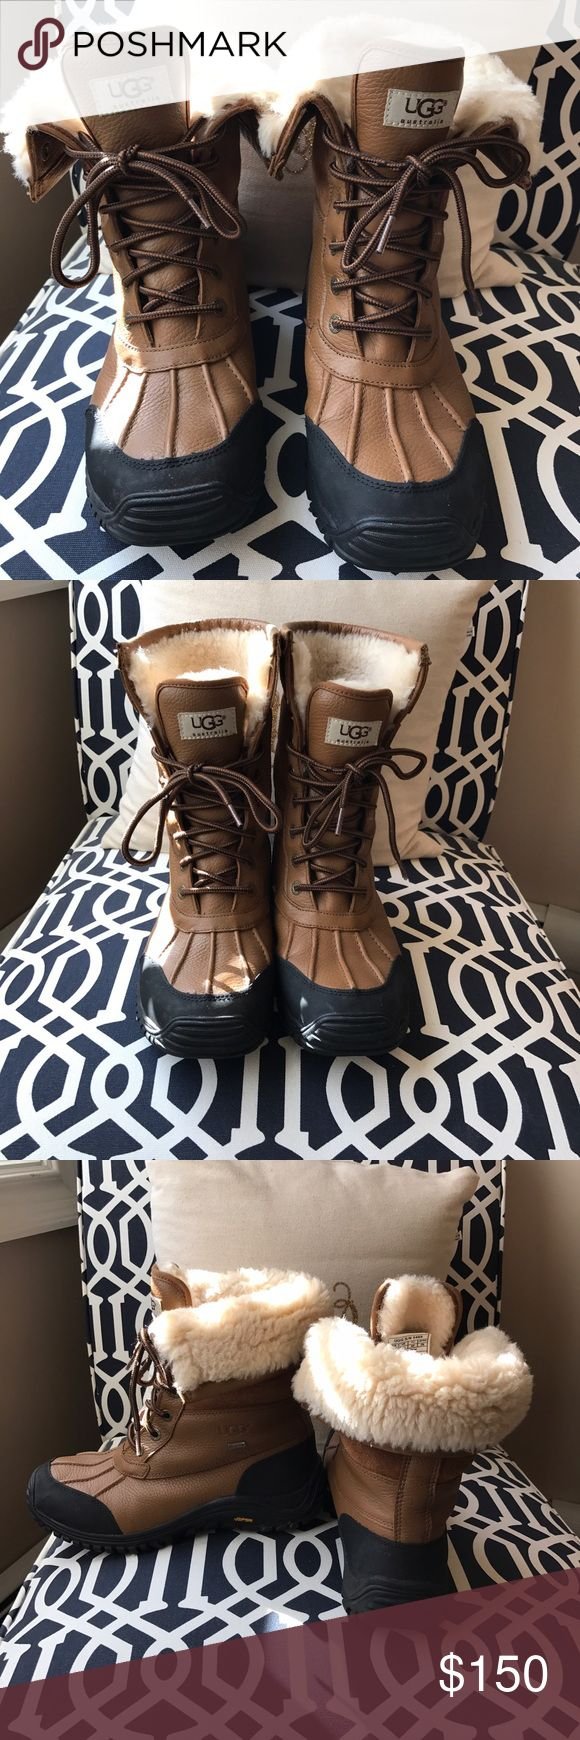 Ugg Adirondack Snow Boots Brown and black Ugg Adirondack boots perfect for the upcoming winter! Worn only a few times (major storms) over two seasons, in good used condition showing just minor wear. Perfect for looking fashionable while also staying warm! UGG Shoes Winter & Rain Boots